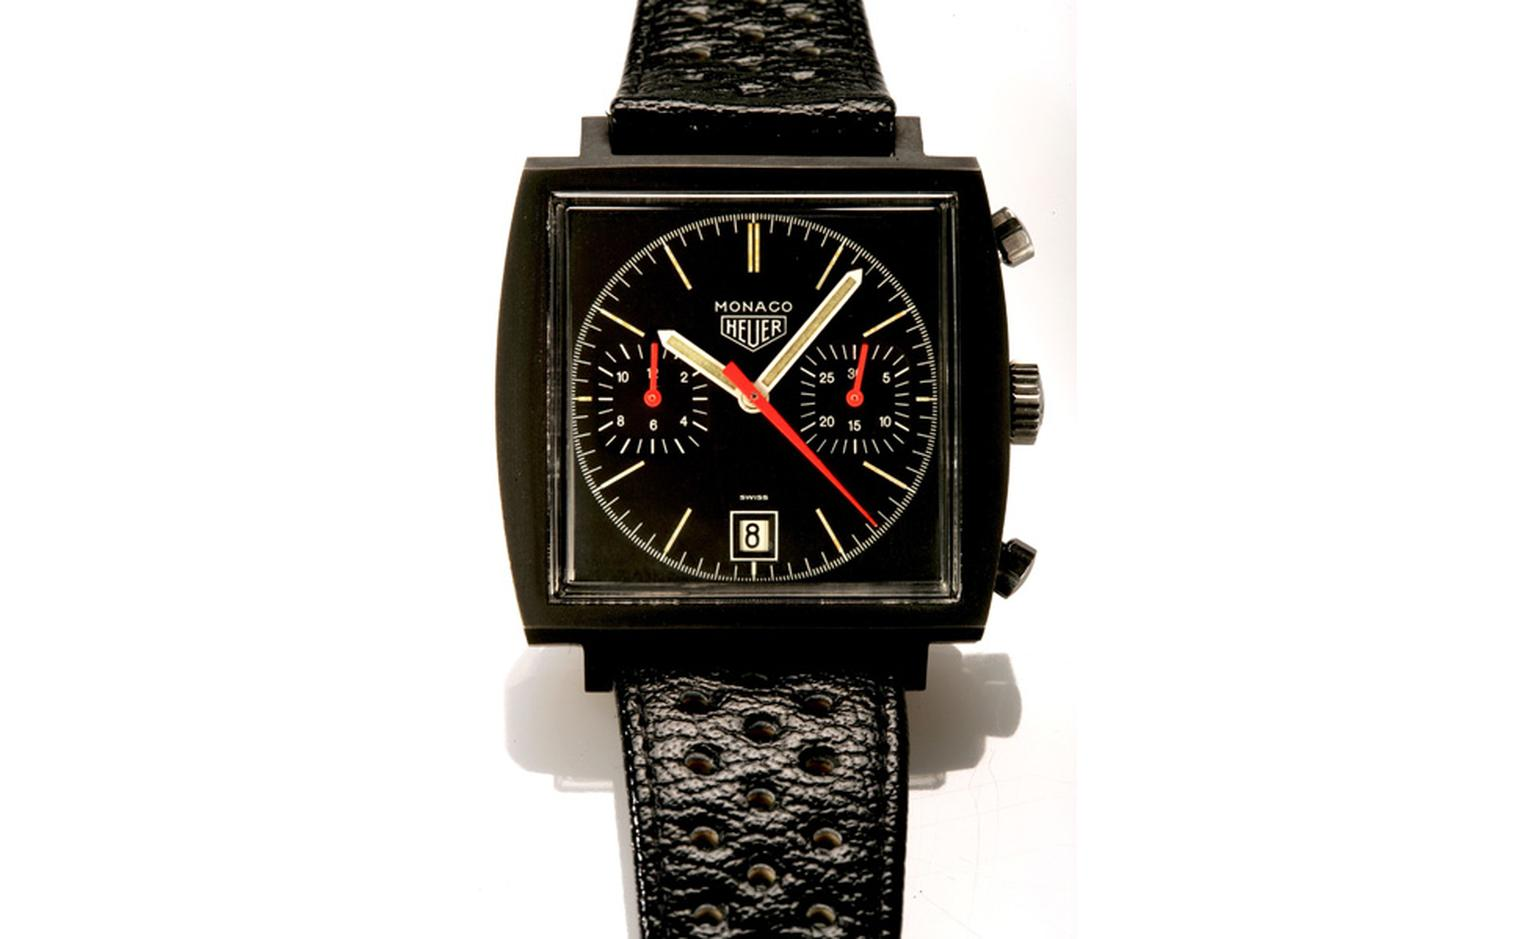 Bonham's Lot 98 was the highest price achieved at the auction. The rare 1974 Heuer Monaco with a black PVD coating sold for £48,000 though estimate was between £10,000 and £15,000